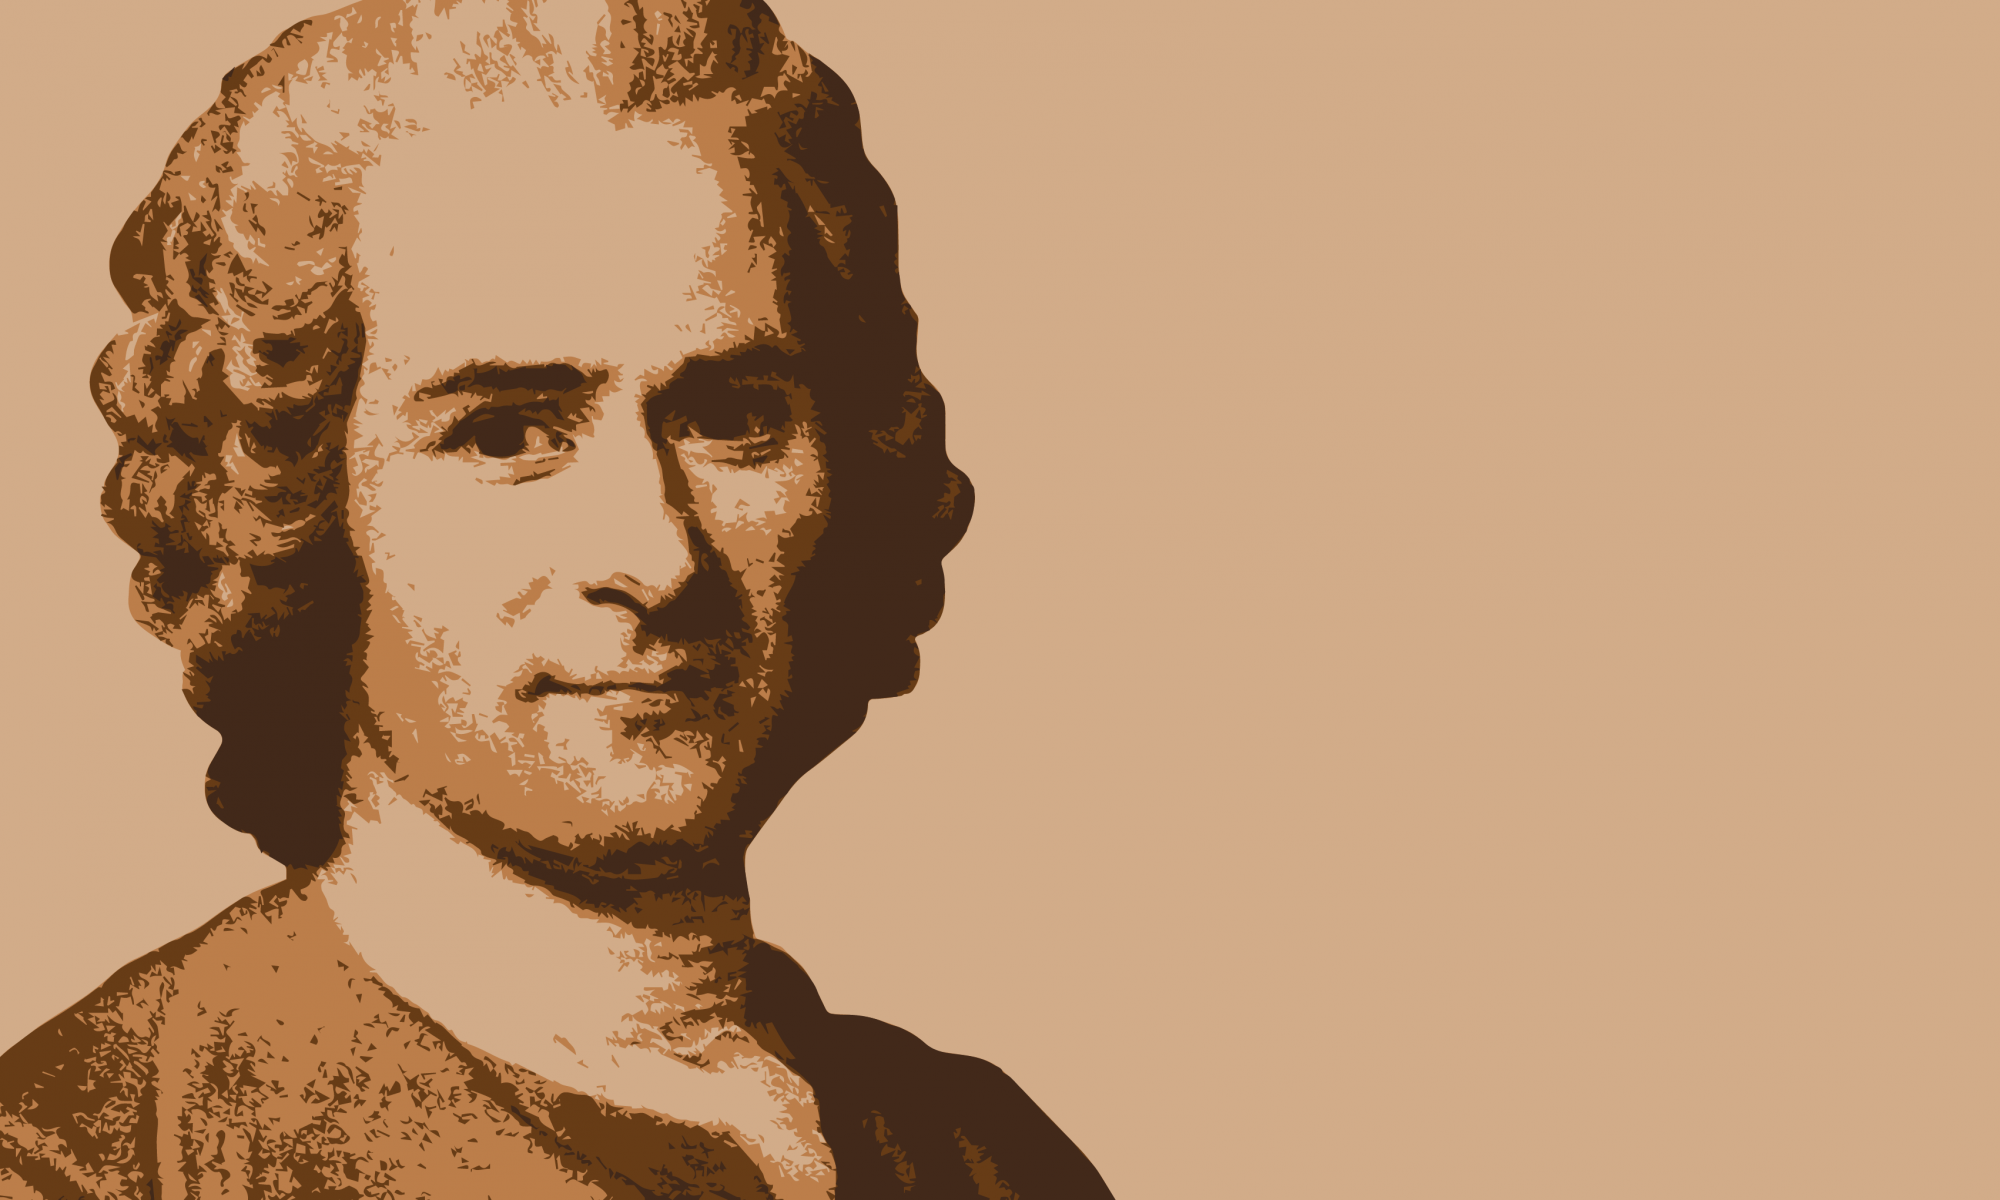 stylized painting of Jacques Rousseau